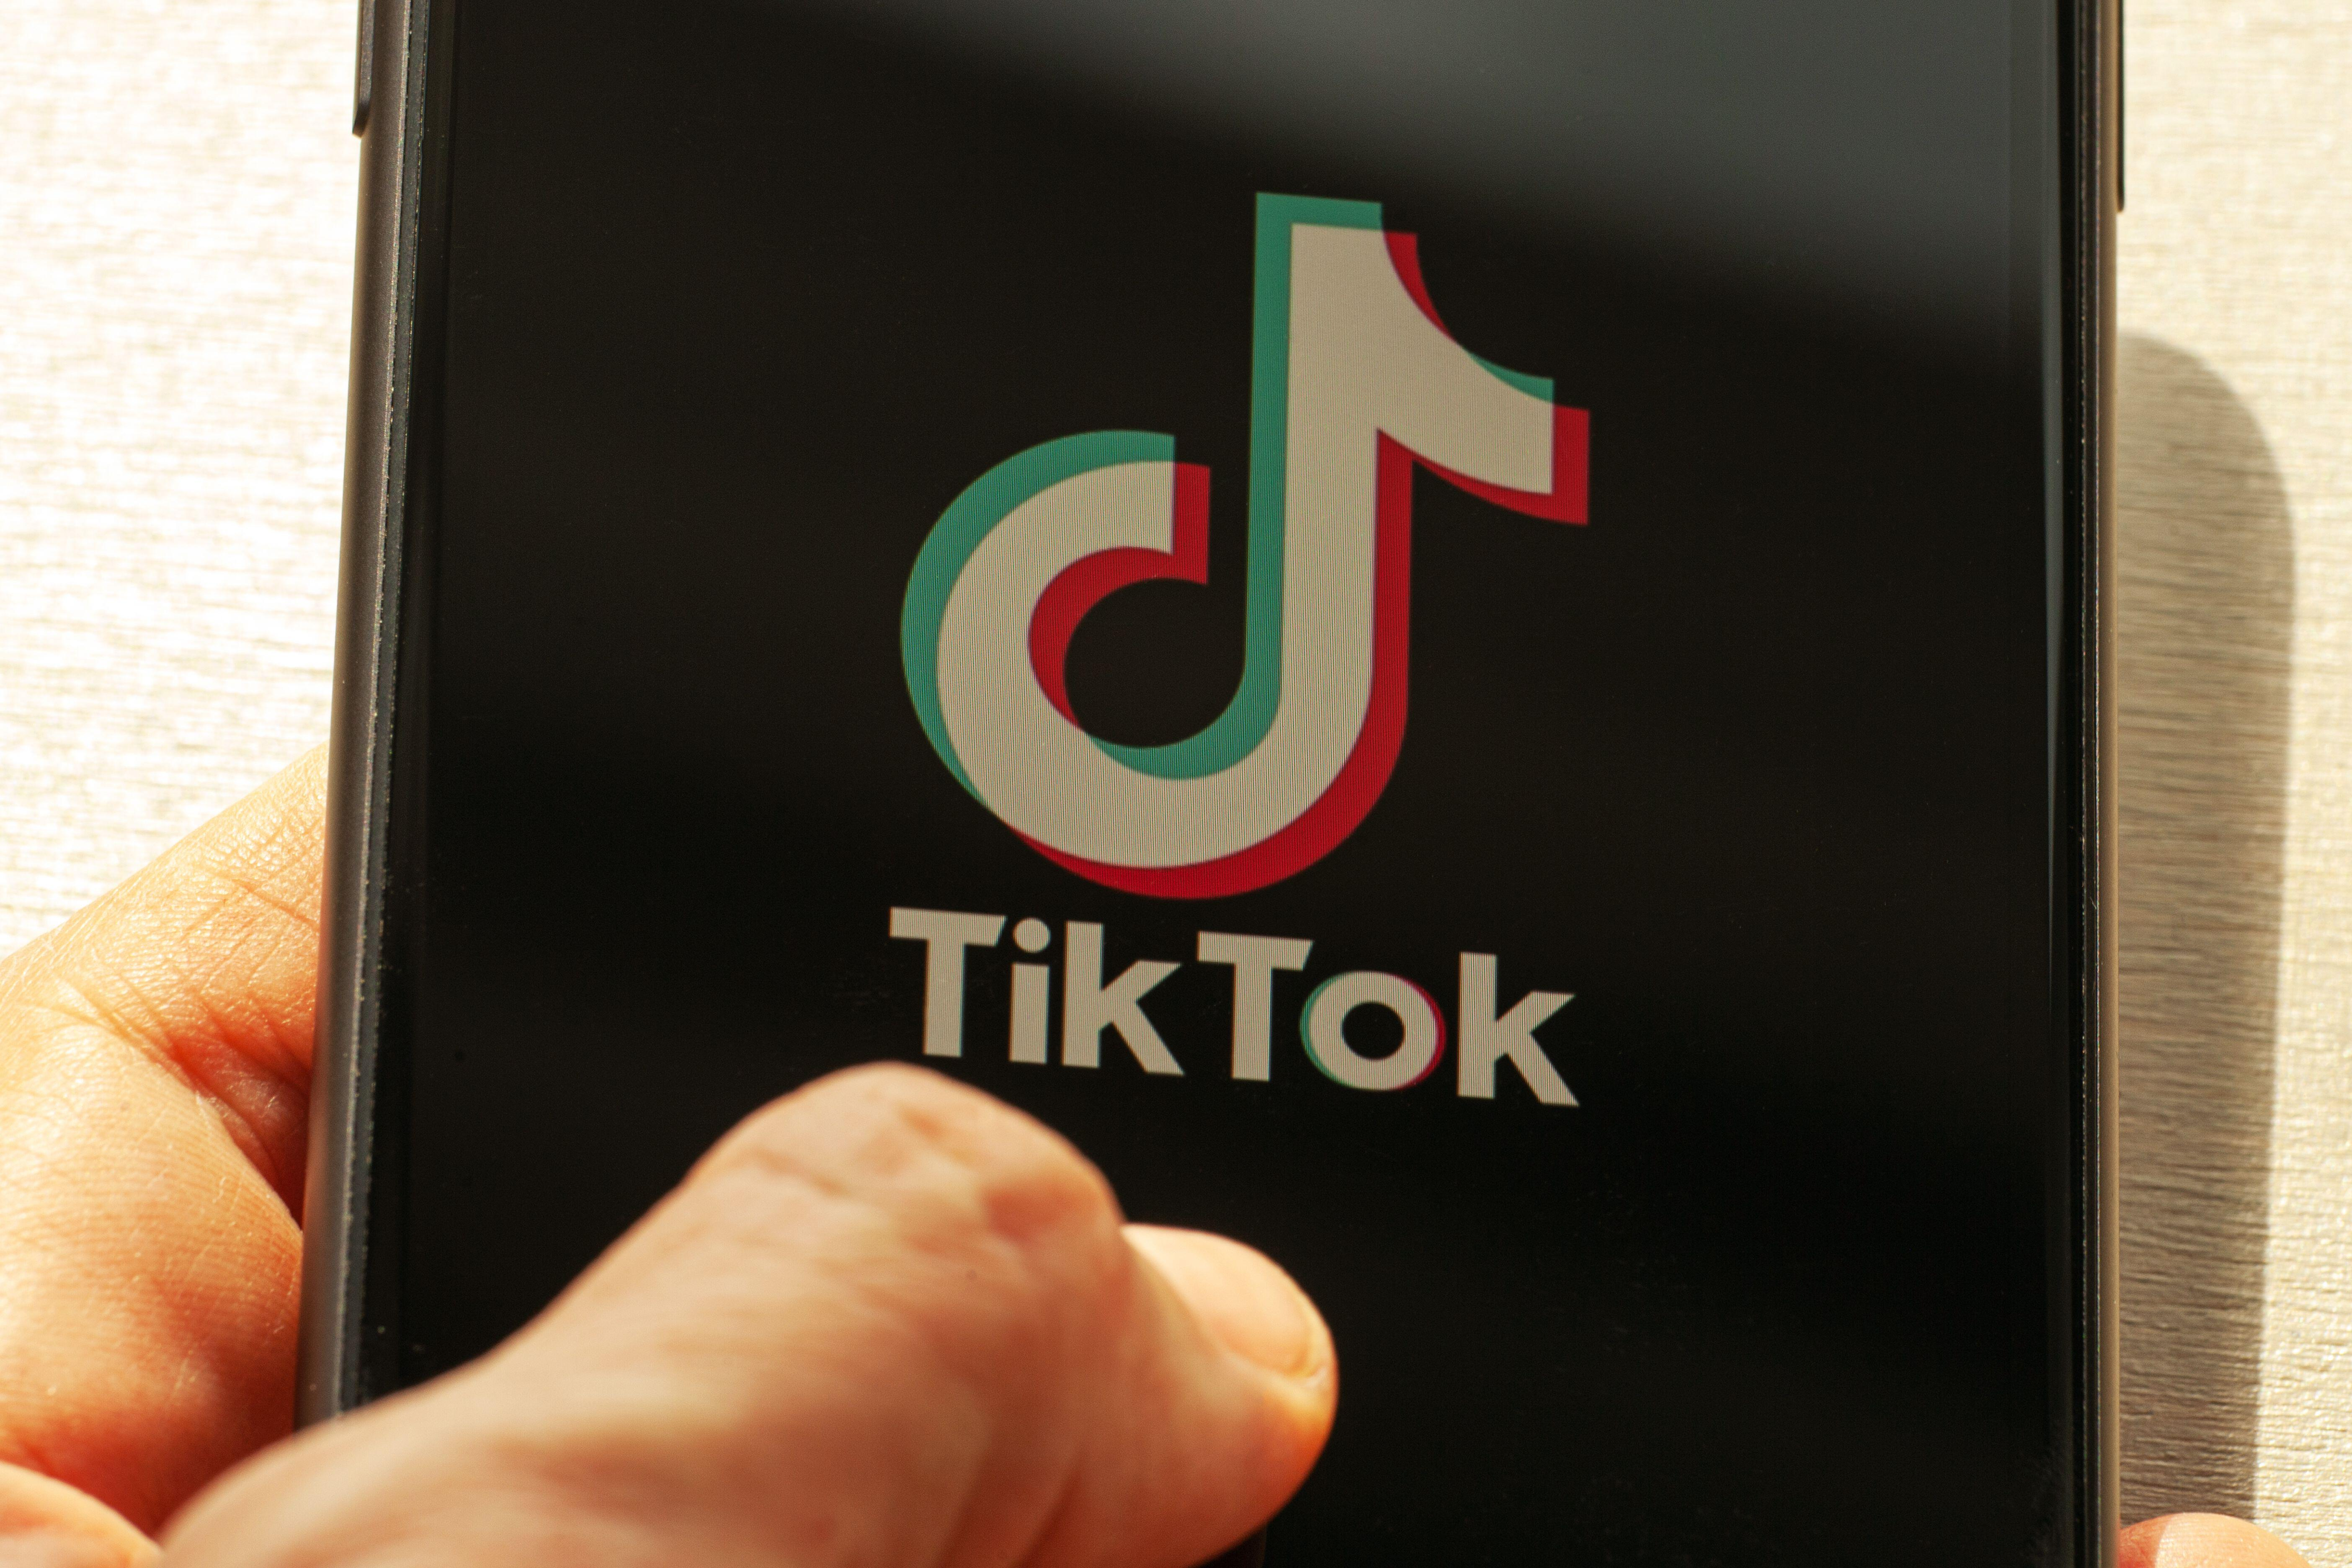 TikTok bans ALL QAnon conspiracy content in disinformation crackdown after similar move by Facebook and Twitter